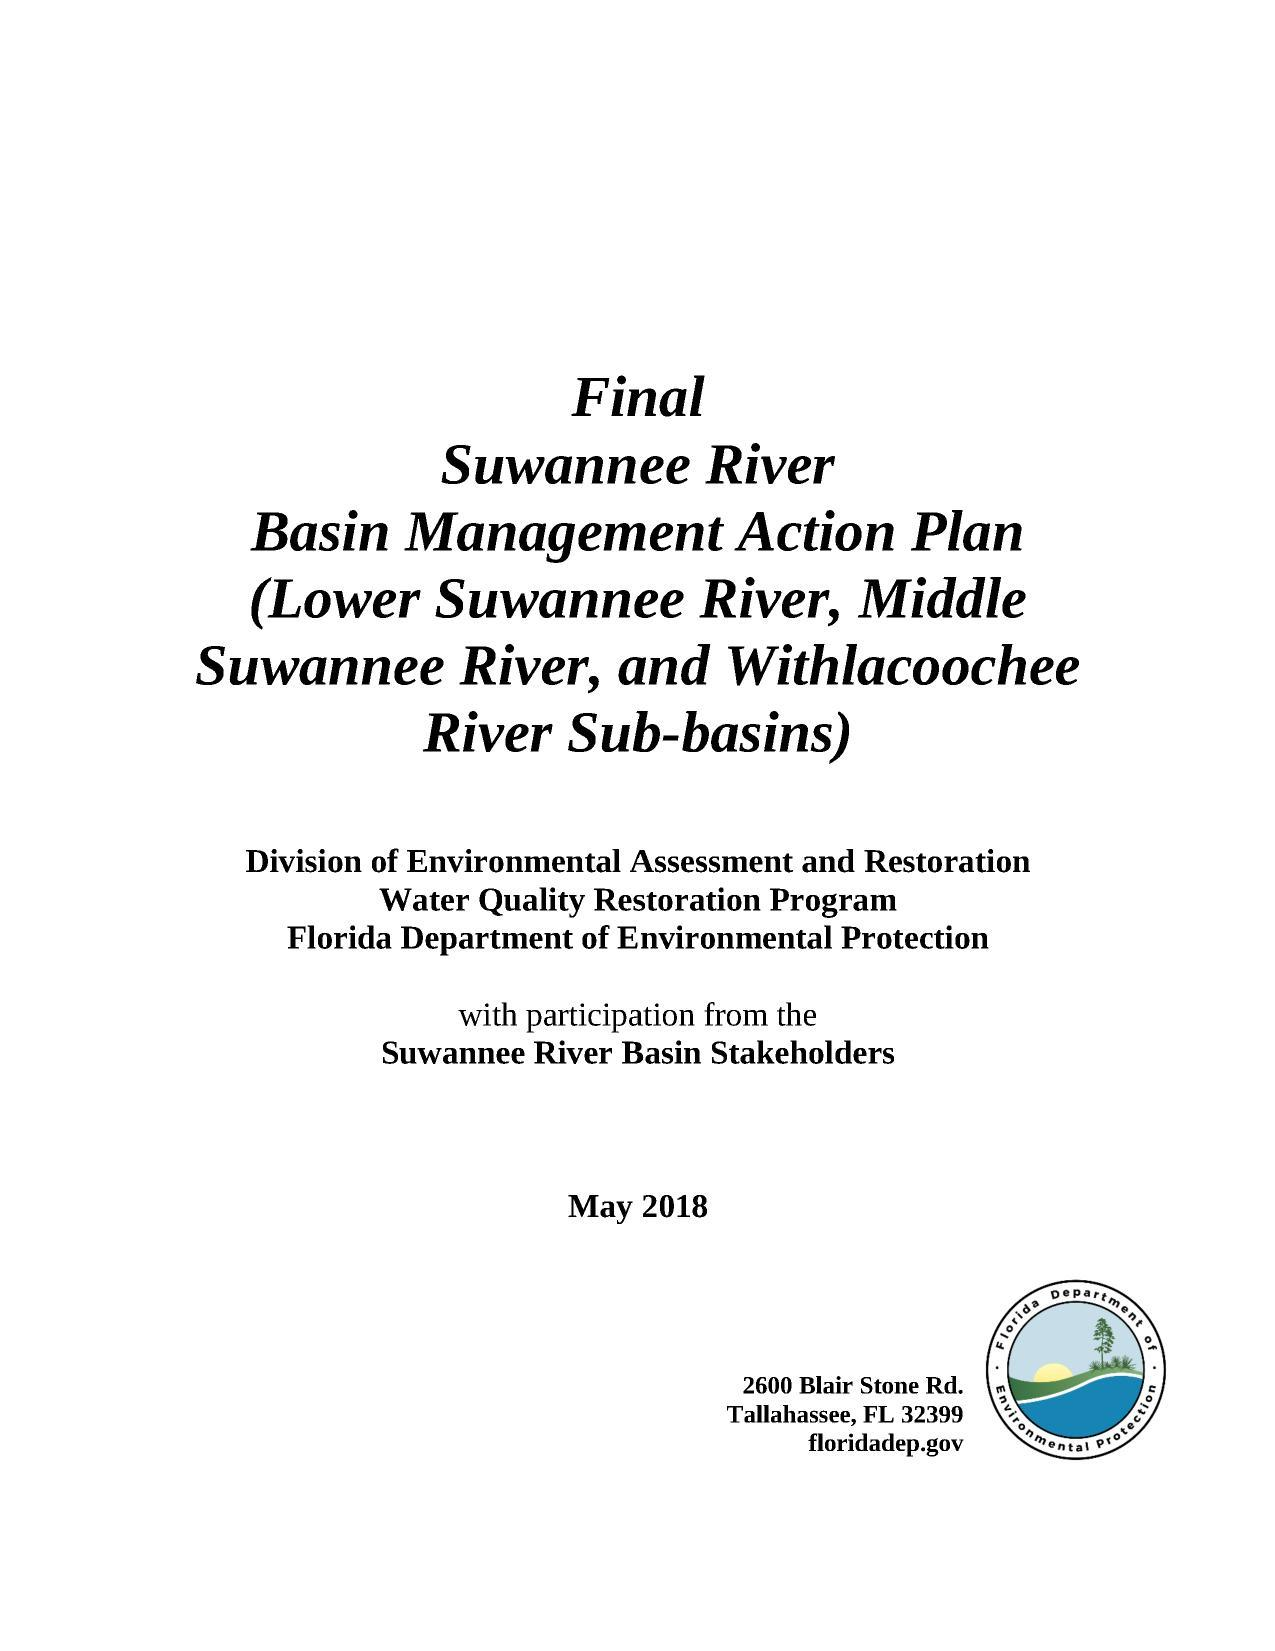 1275x1651 Cover, Front, in Final Suwannee River BMAP, by FDEP, for WWALS.net, 22 May 2018